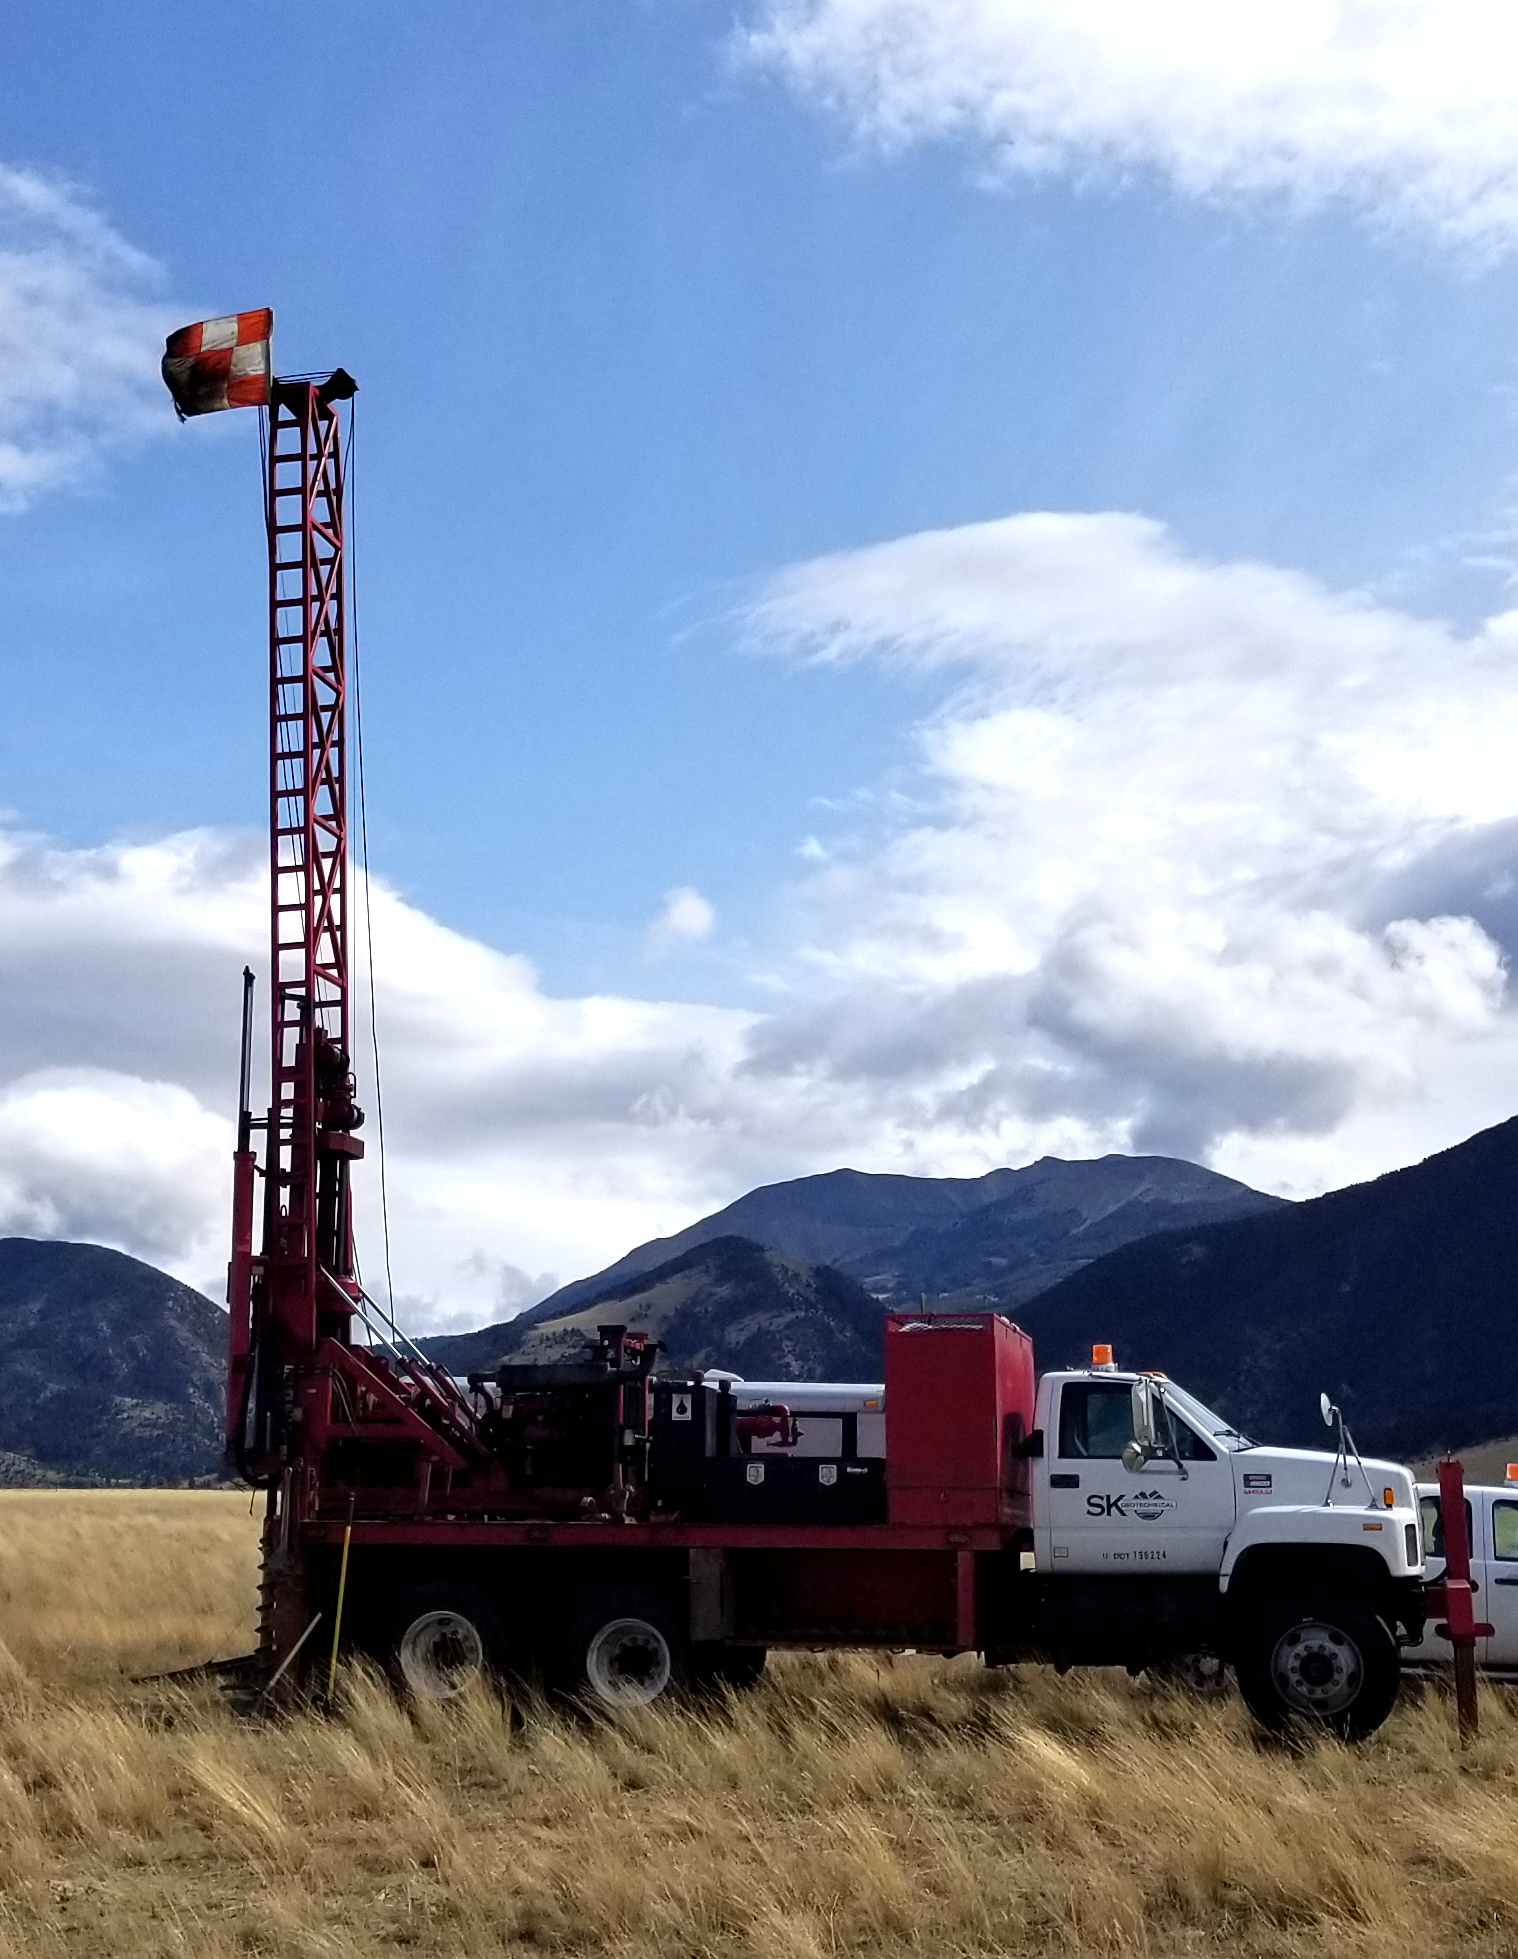 Drill rig red truck mountains montana